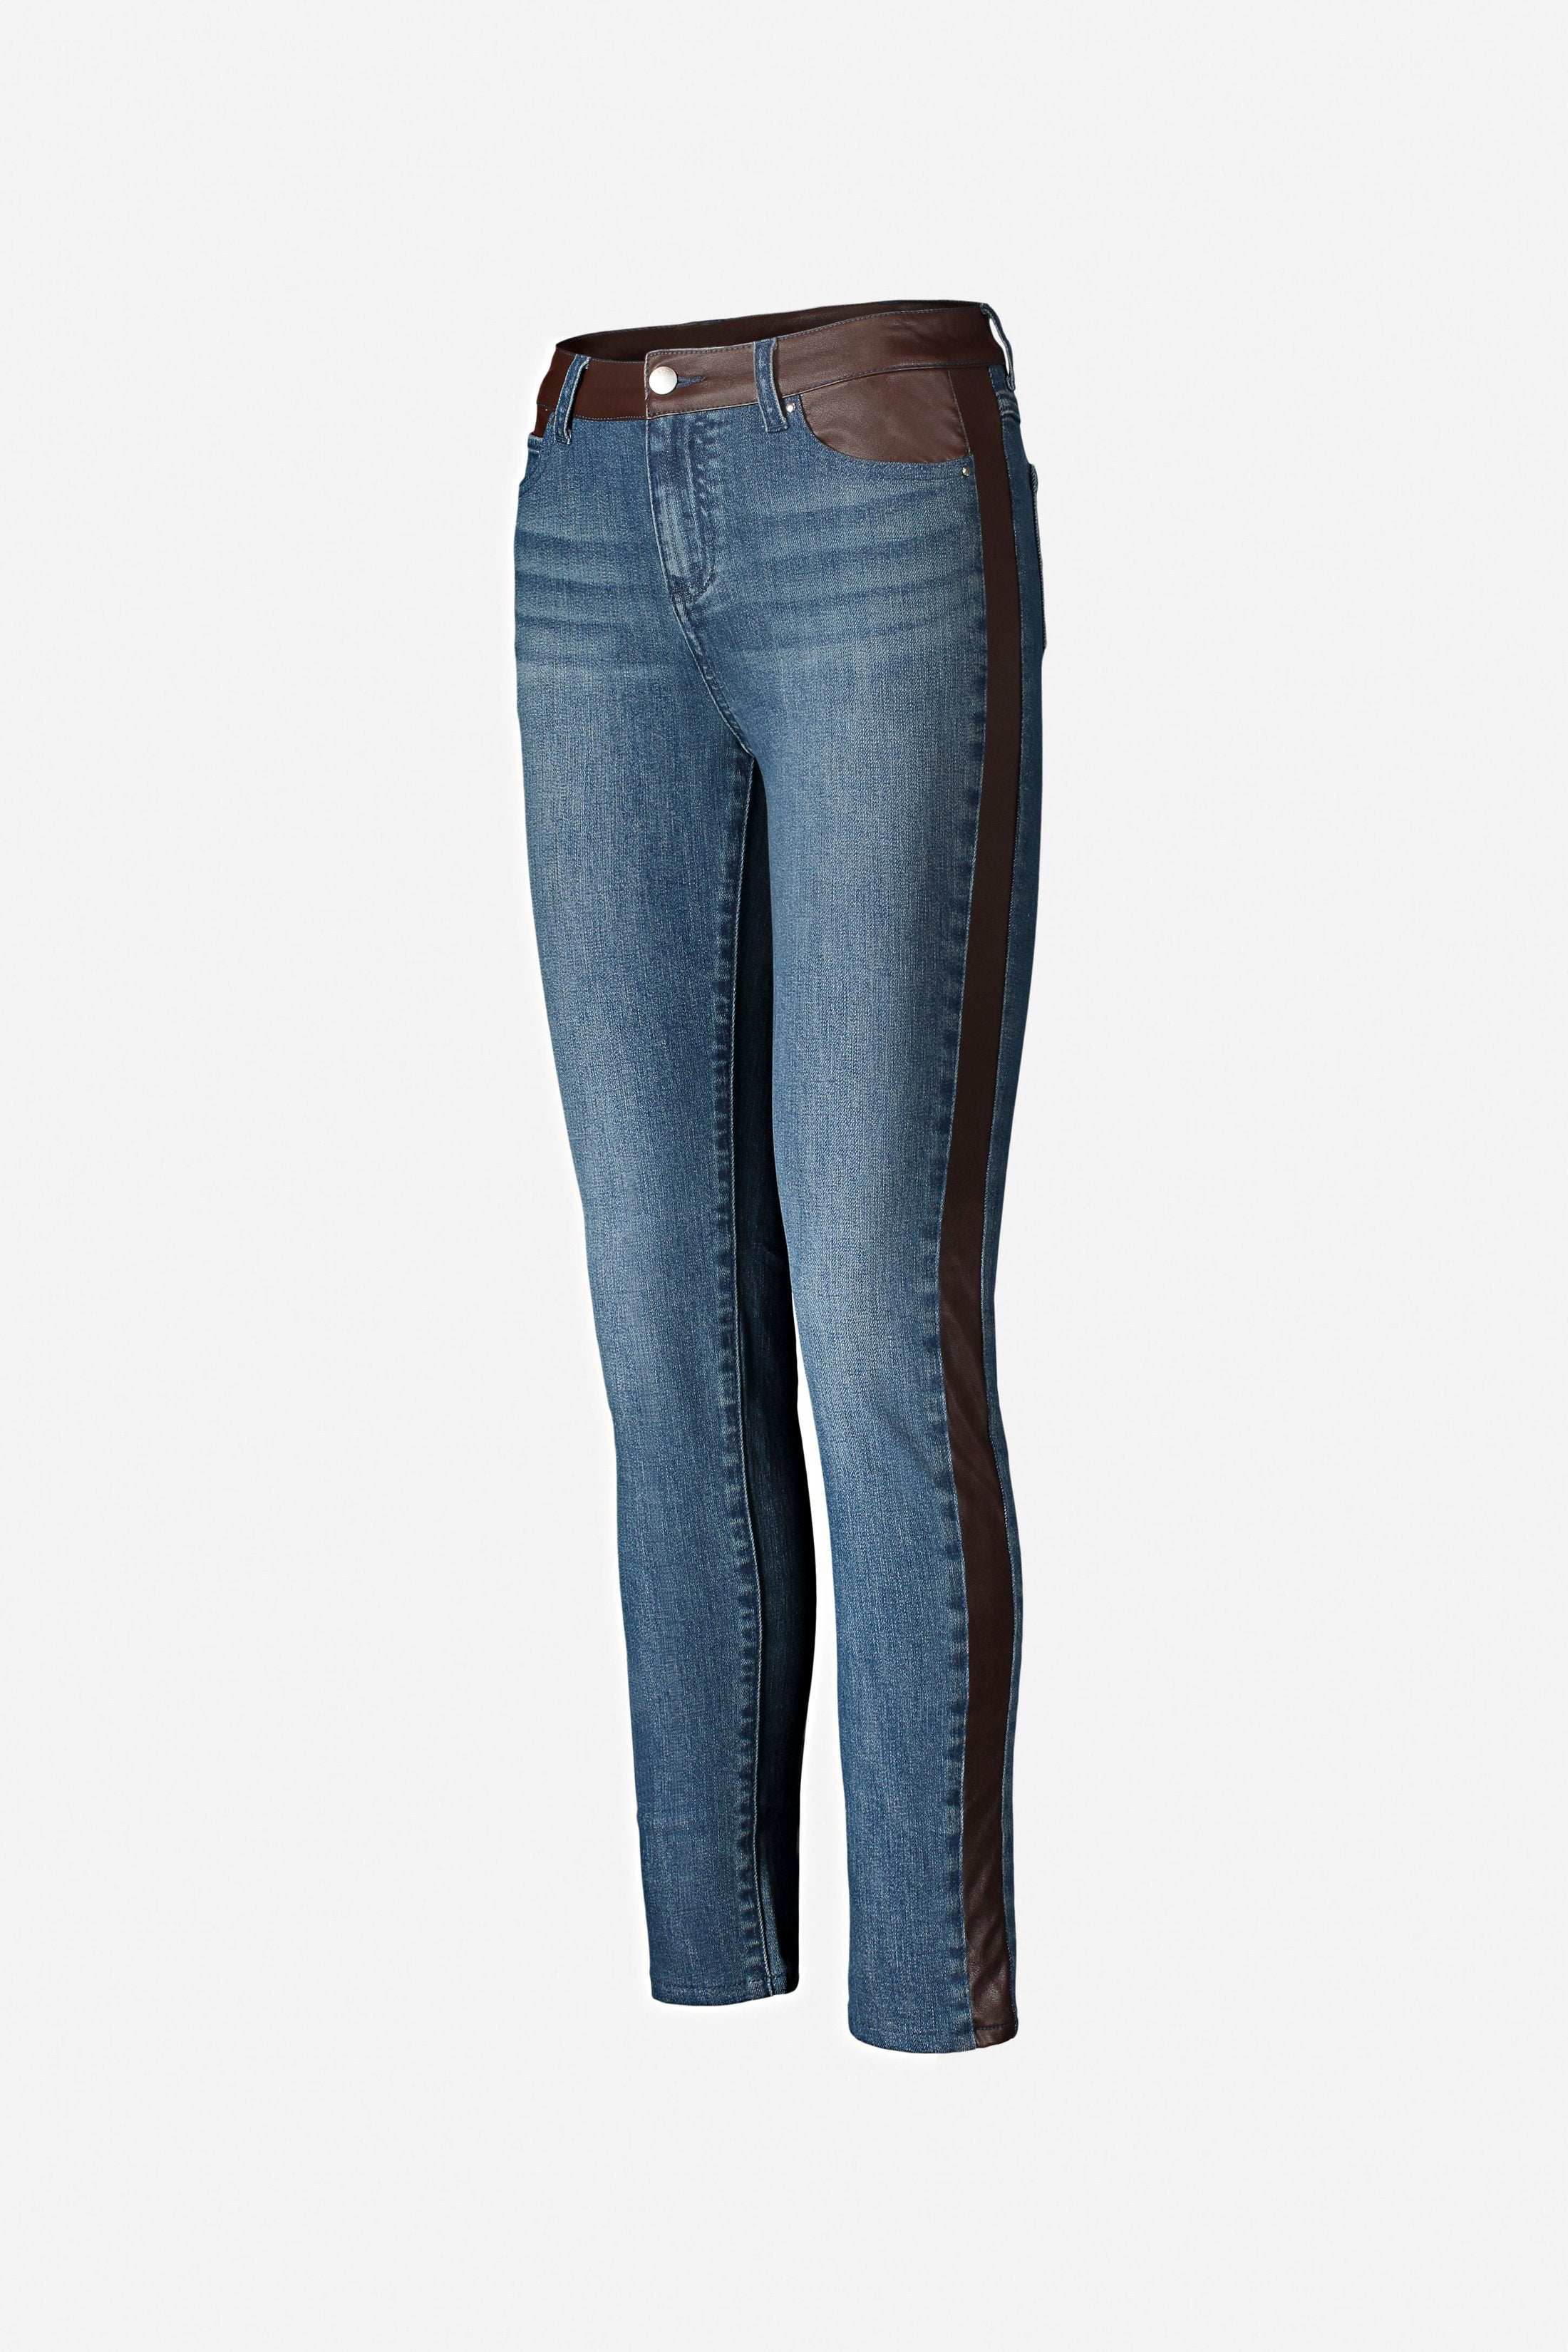 ECRU Los Feliz Jean With Leather Inset